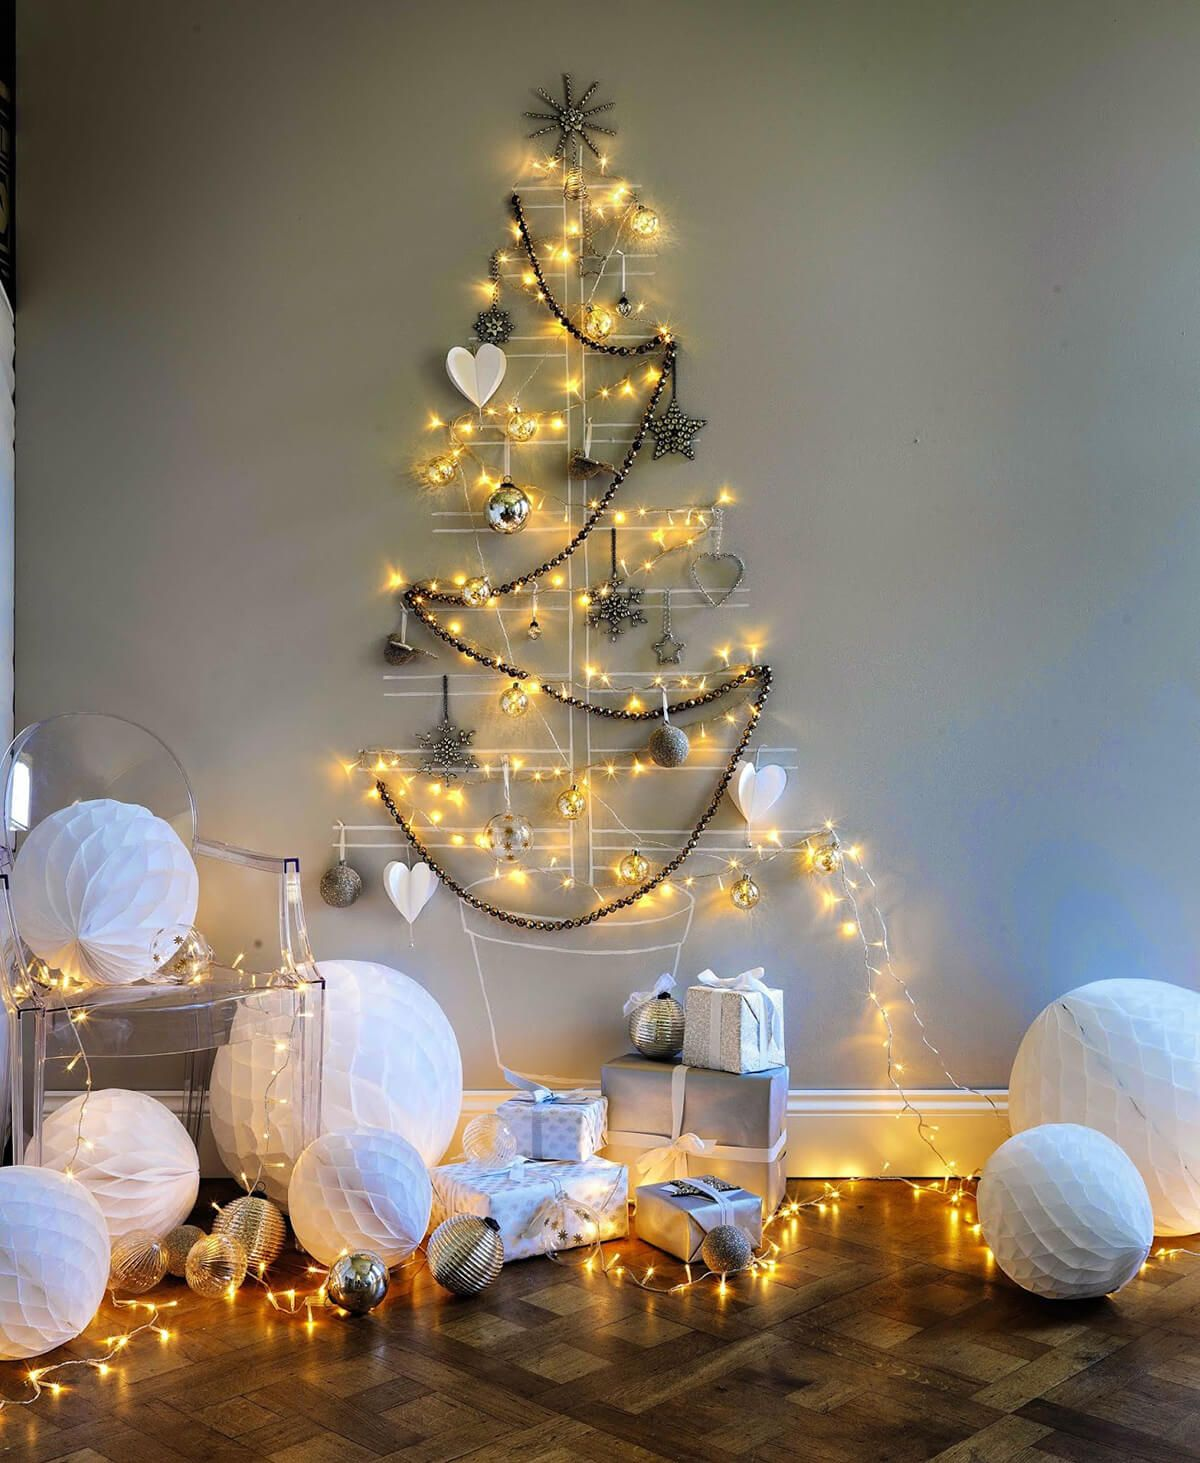 35 Festive Christmas Wall Decor Ideas That Will Instantly Get You